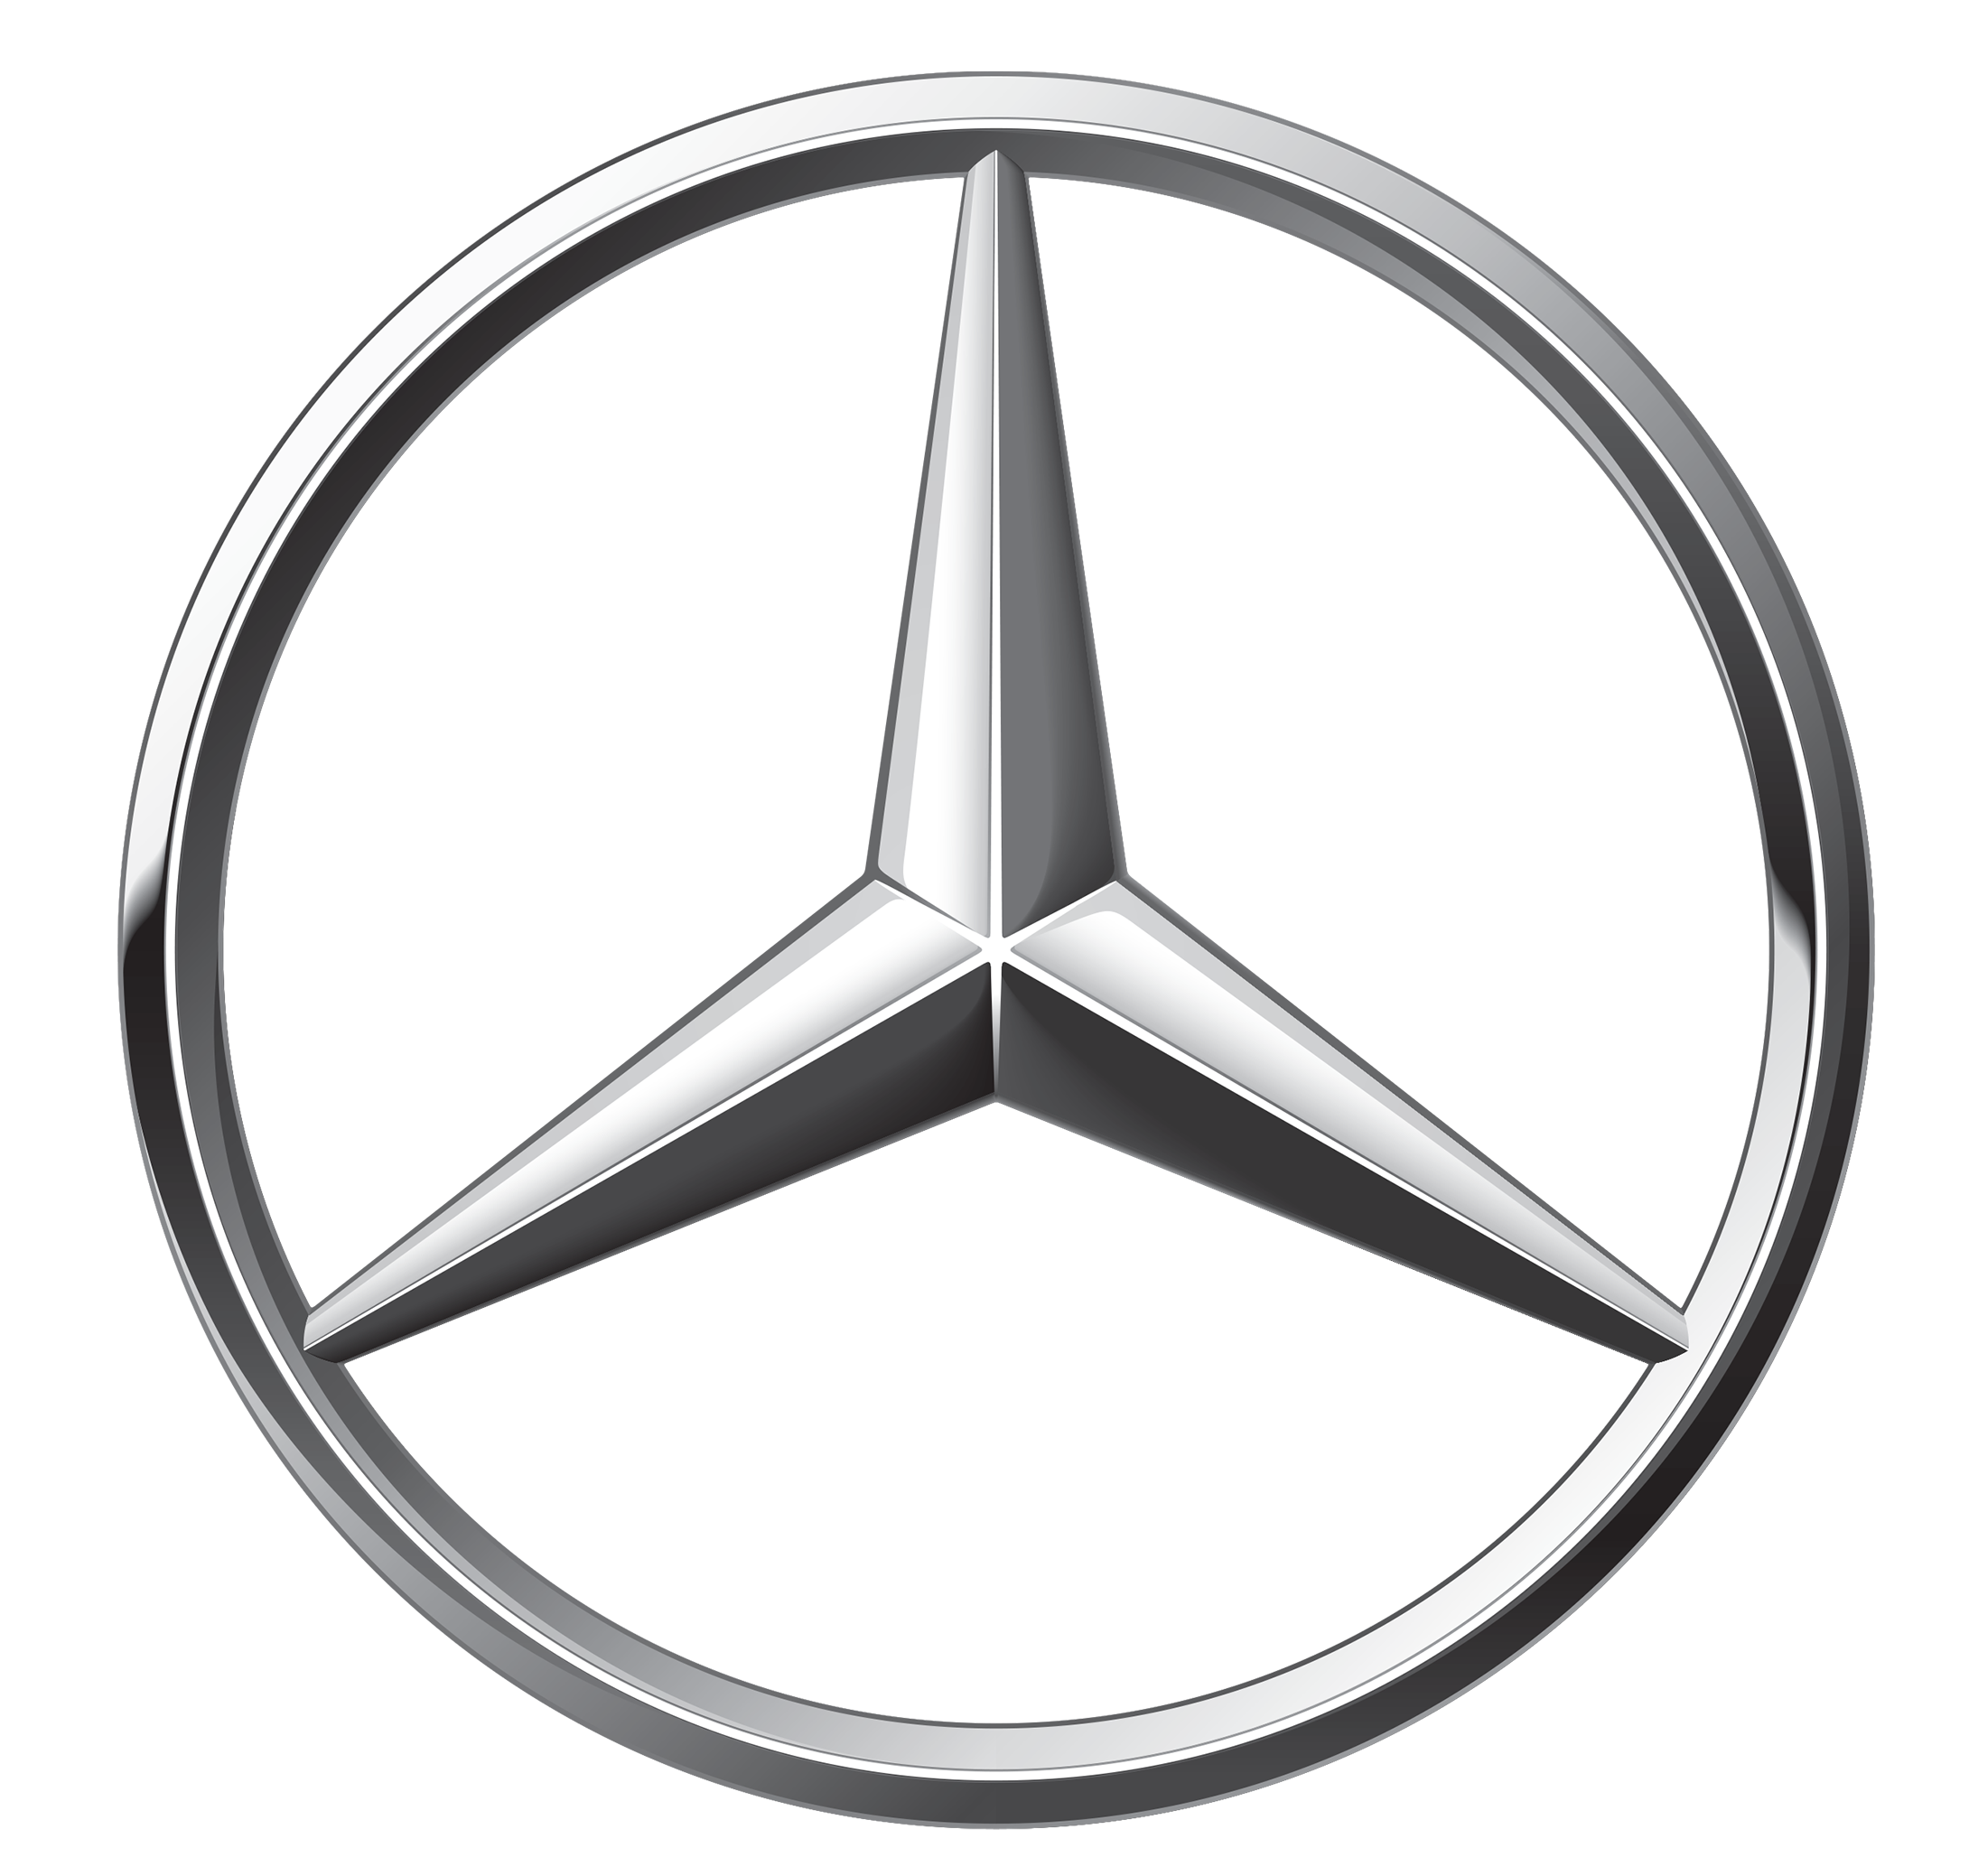 Rusnak arcadia will mercedes benz bring the a class to for Rusnak mercedes benz arcadia